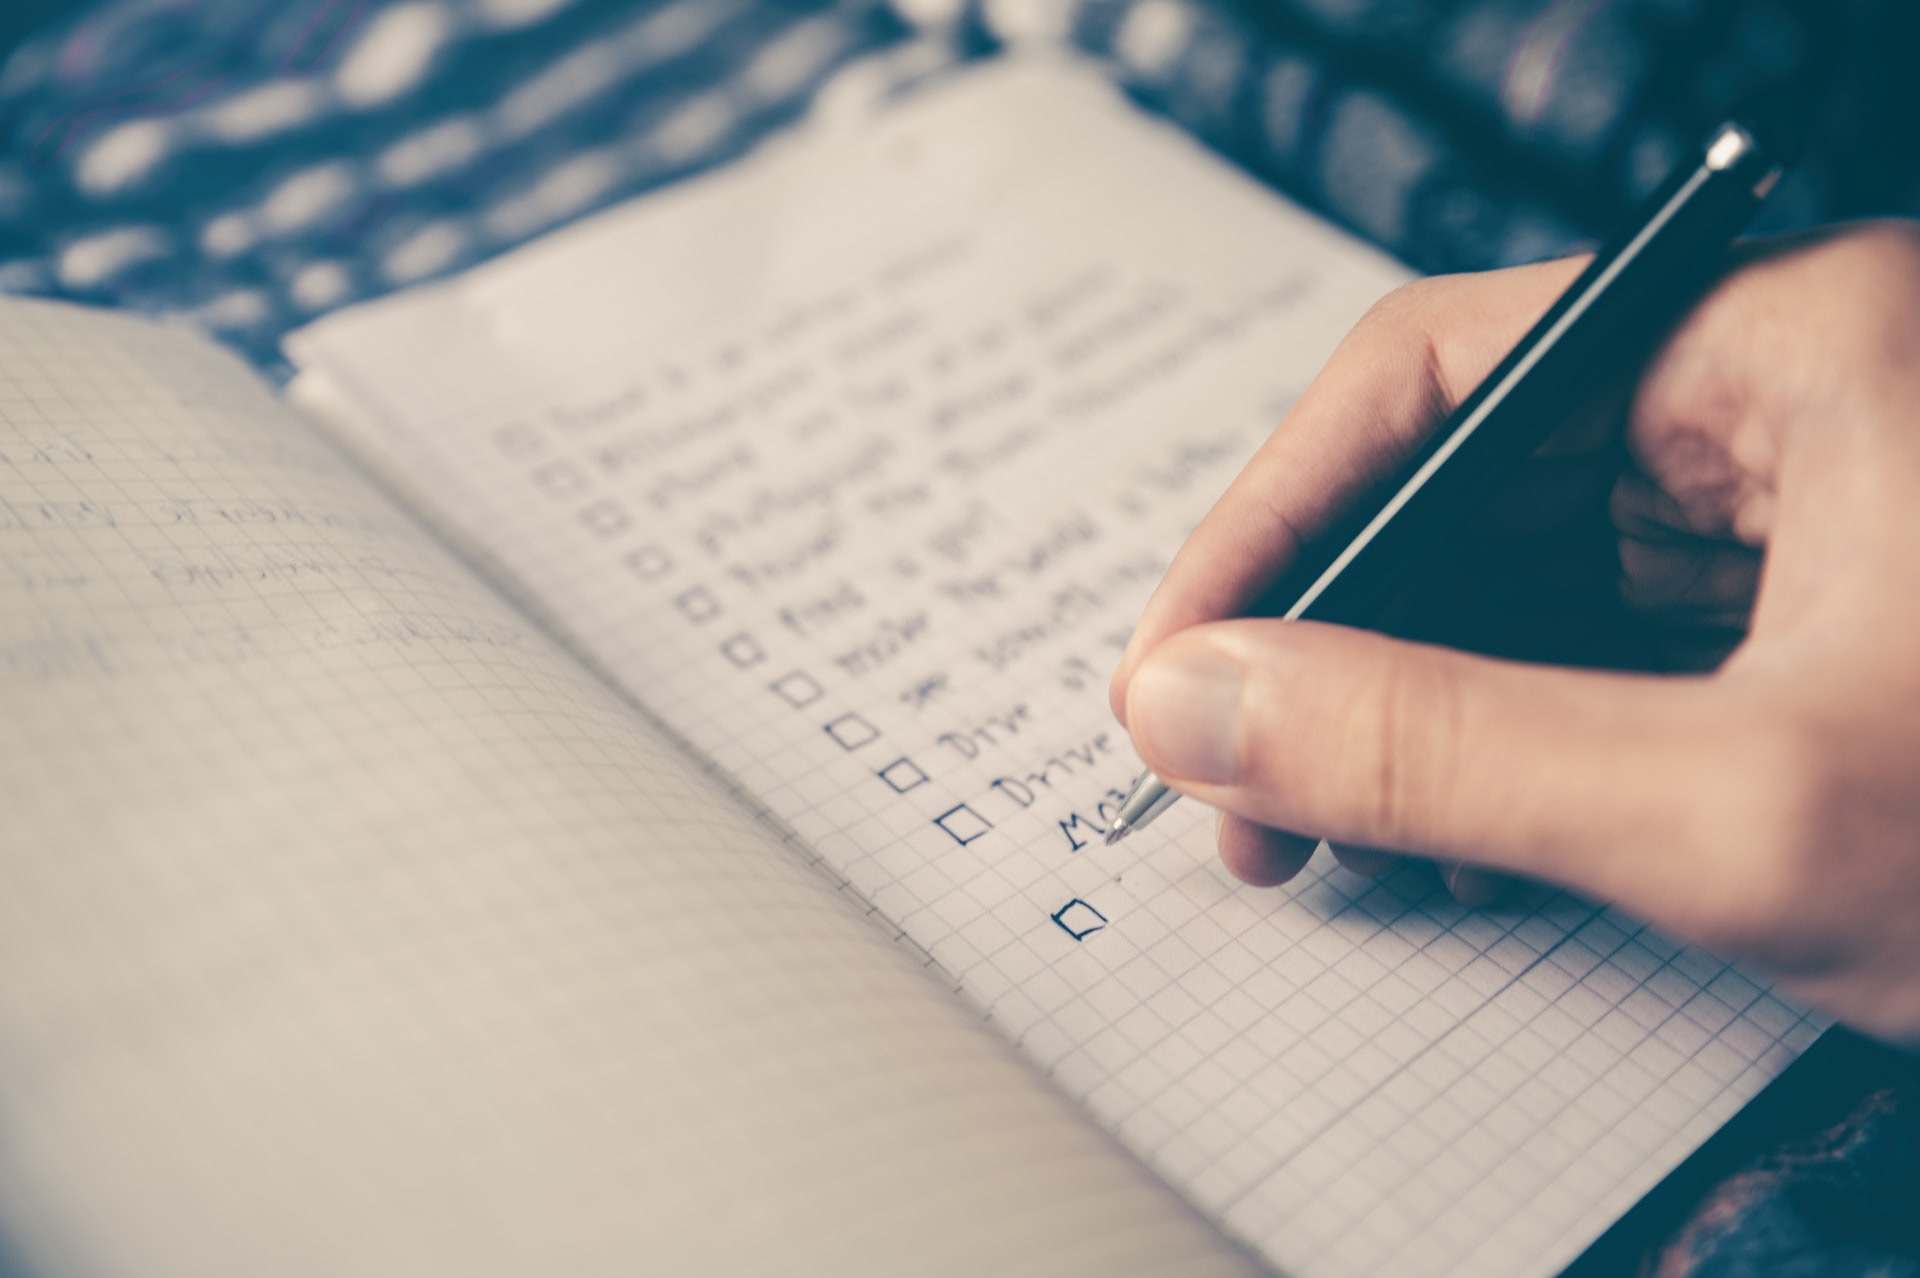 How to Prioritize: Tips to Setting Priorities Effectively